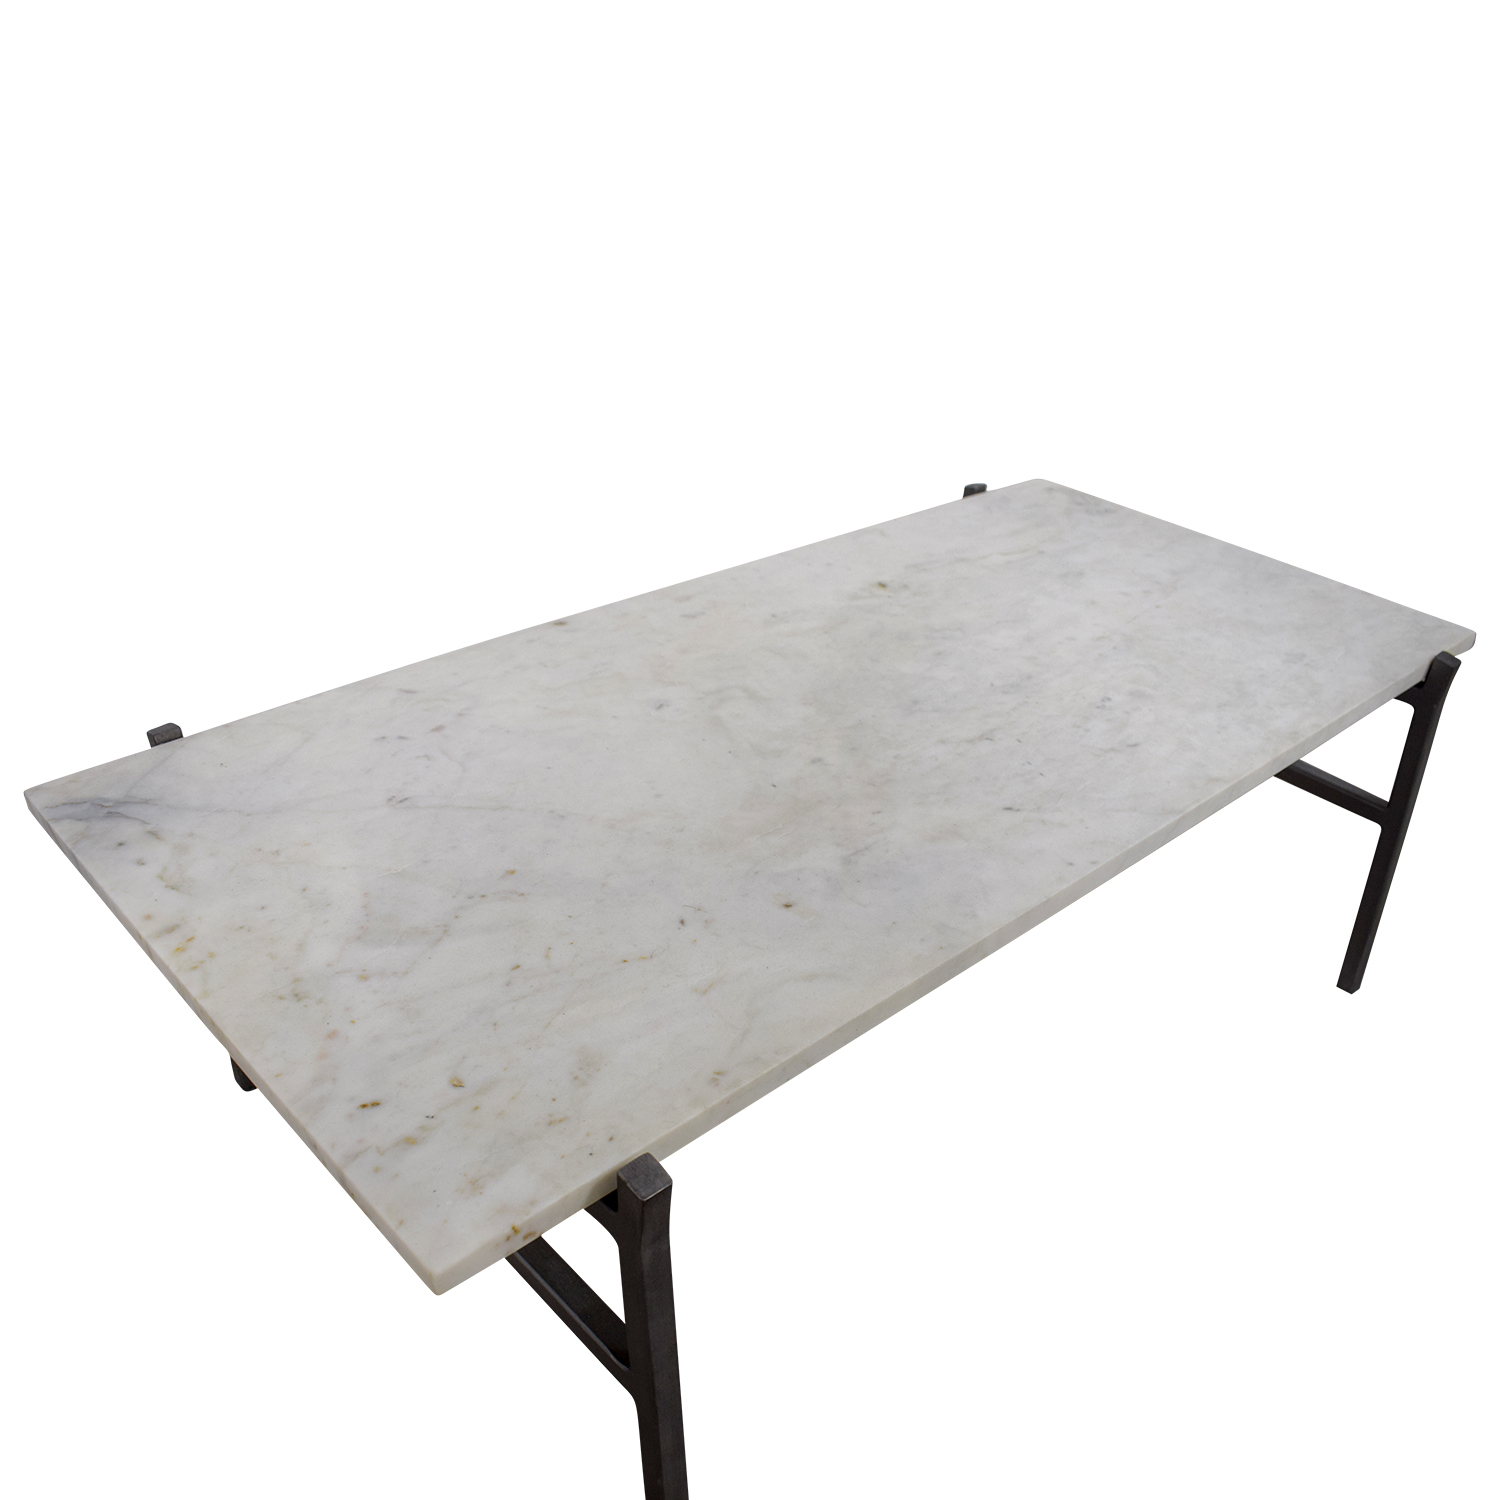 CB2 CB2 Slab Small Marble Coffee Table With